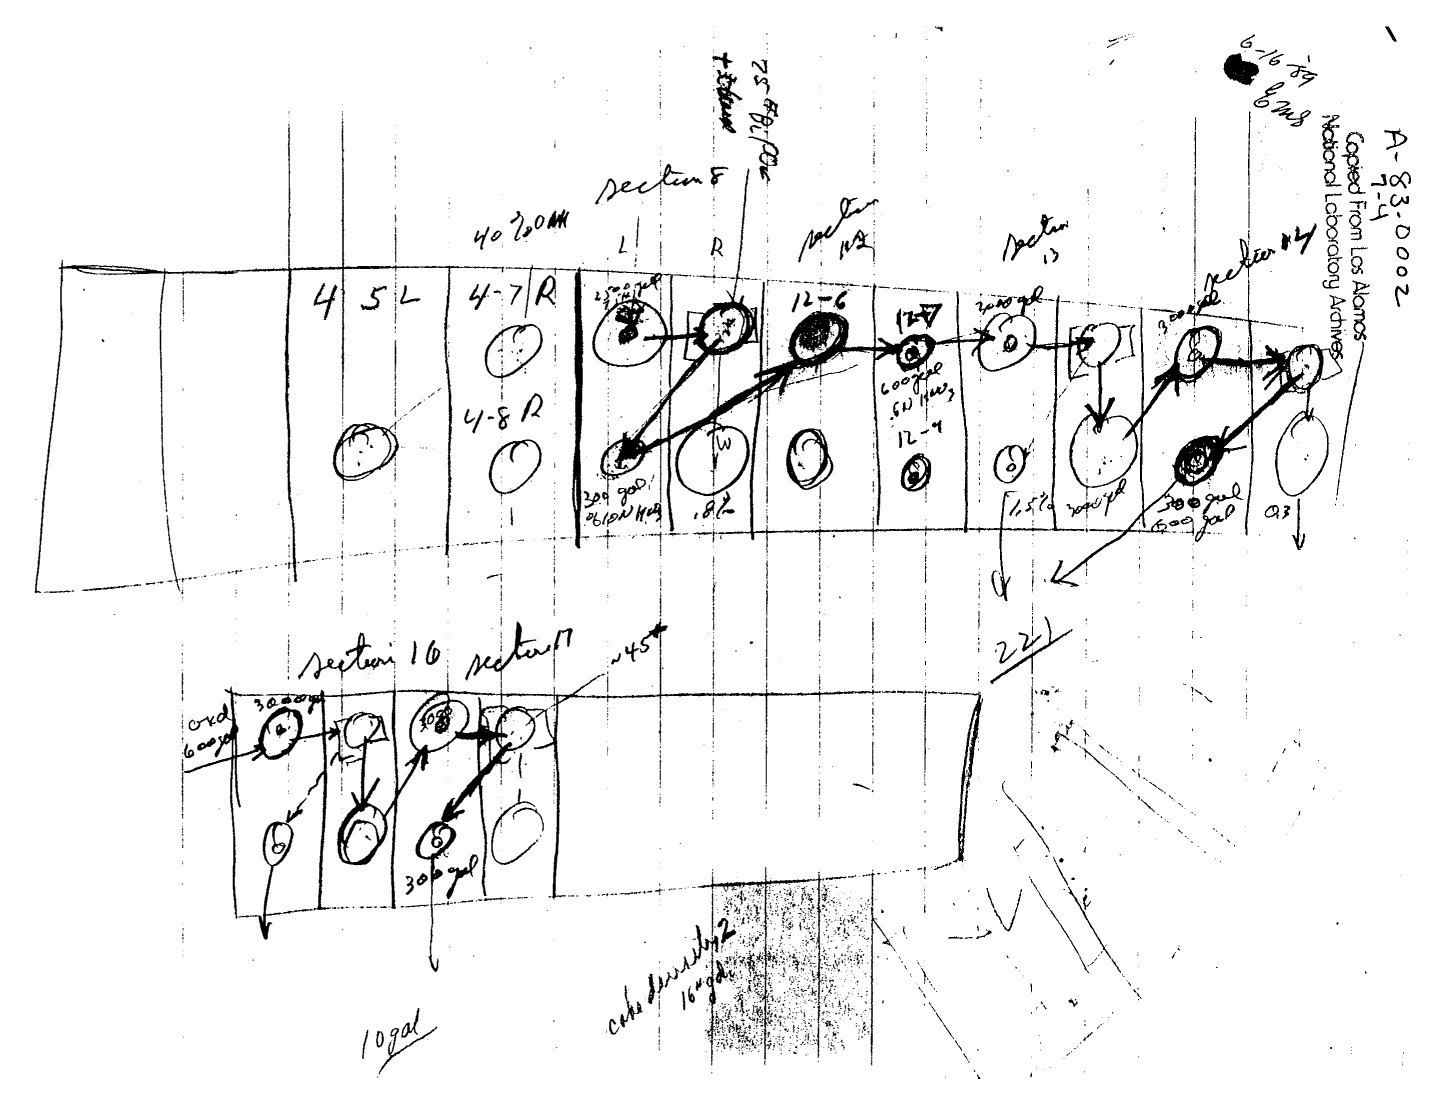 Feynman And The Bomb Restricted Data Hand Some Boy Scooter Wire Diagram Feynmans Diagrammatic Sketch Of Storage Barrels Uranium At Oak Ridge Prepared For His